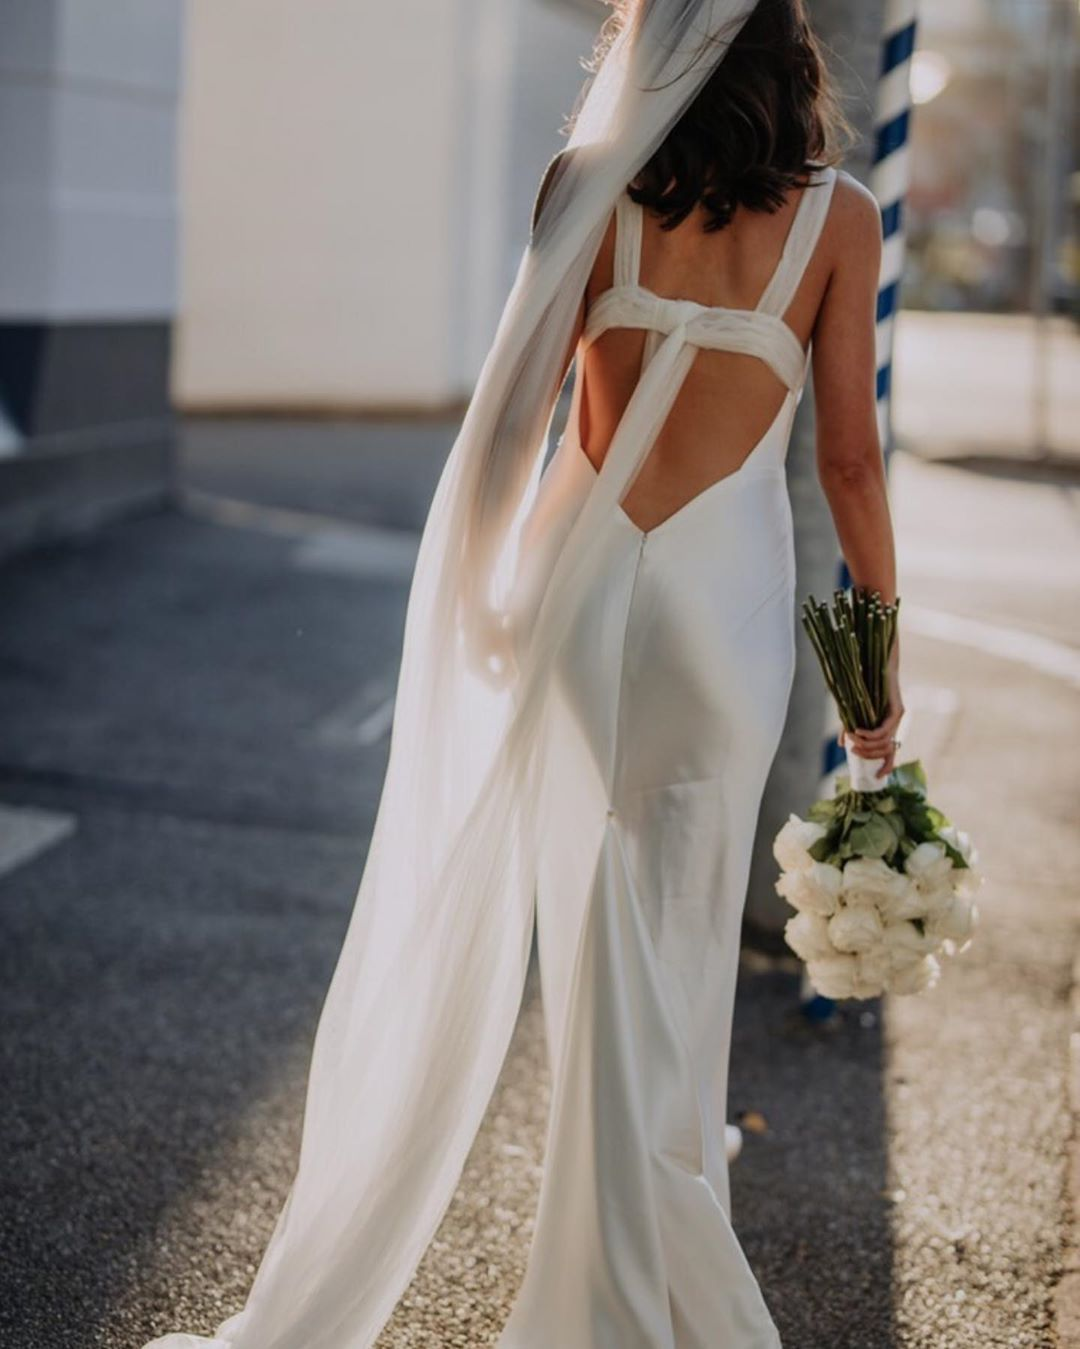 Sphere Bride Our Stunning Bri Kelly In Mccarthy Gown By Chosenbyoneday Captured By Jessiedains Wedding Dresses Used Wedding Dresses Dresses [ 1349 x 1080 Pixel ]